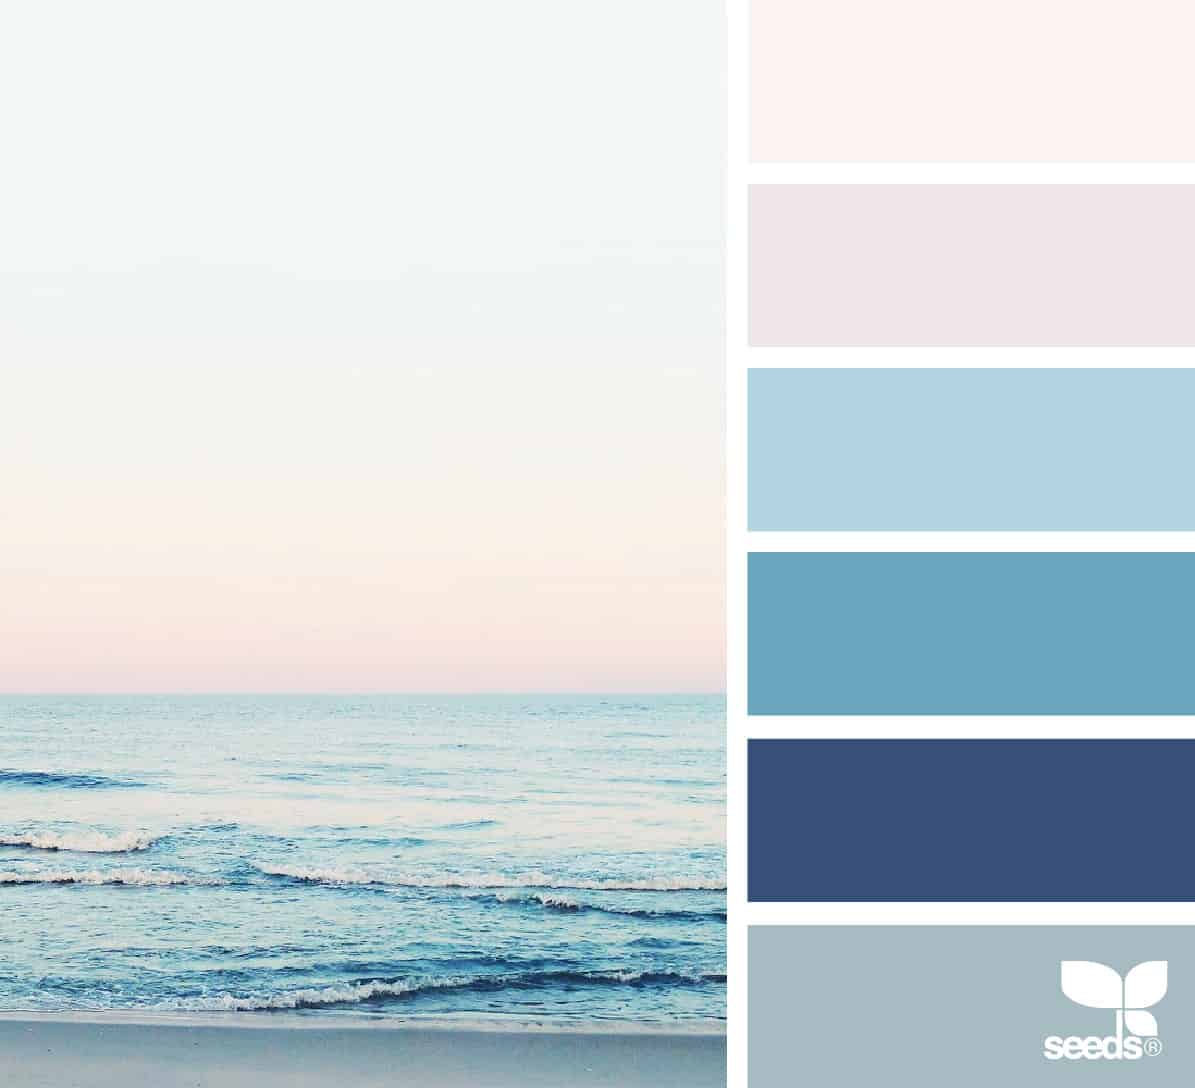 ocean view with sunset and palette